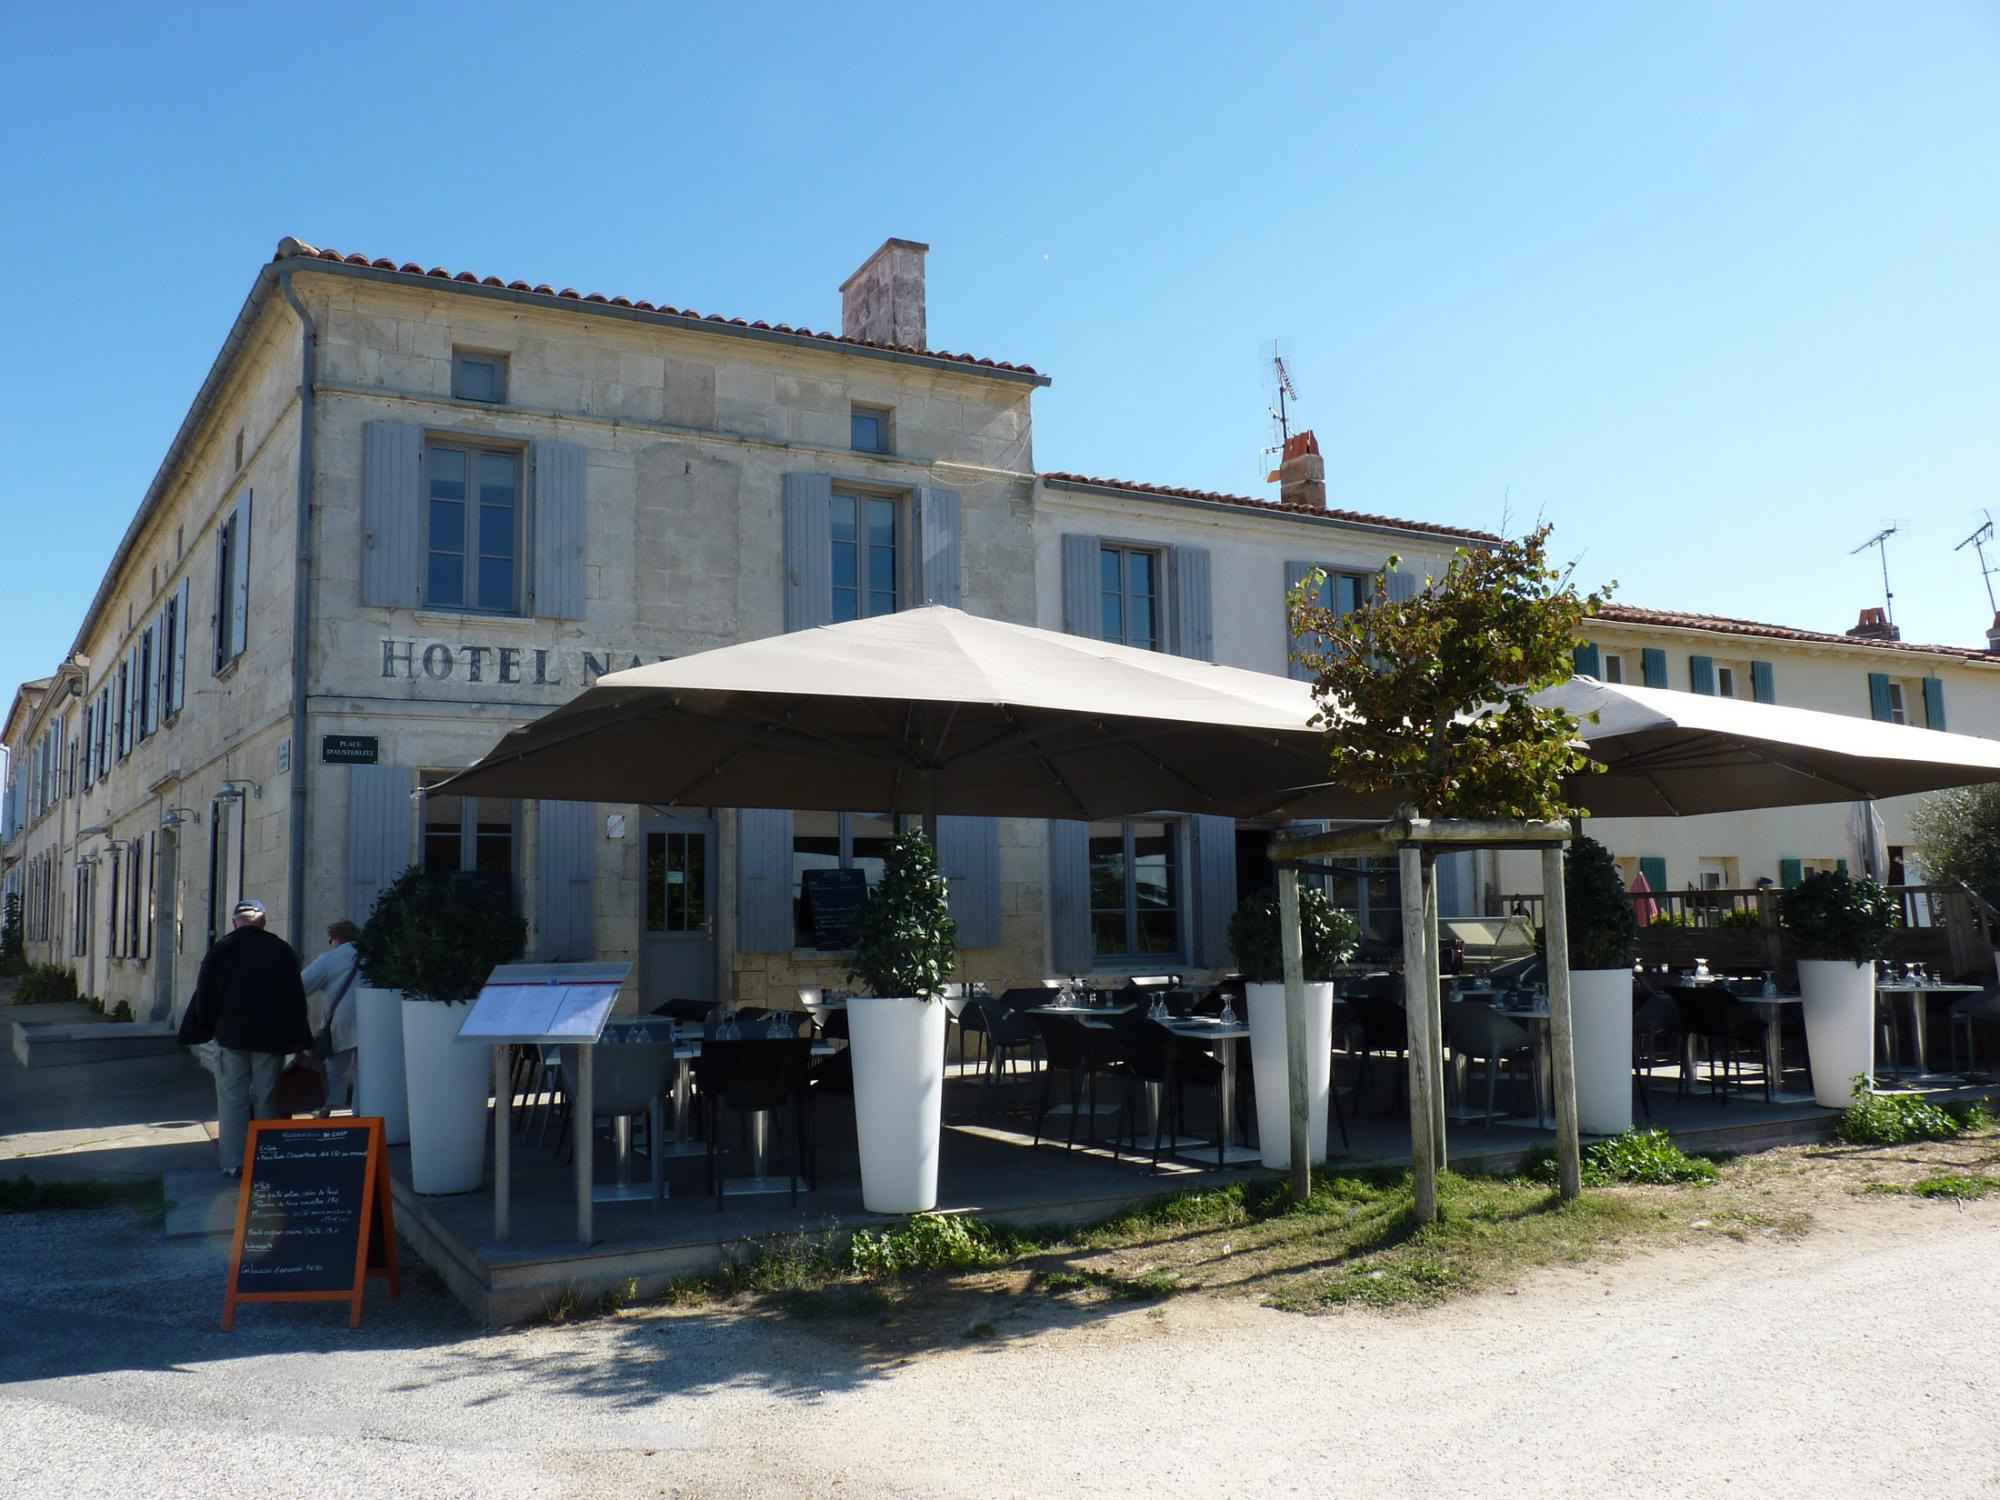 Aix island's gastronomy - Crossings by ferry boats Fouras / Aix island